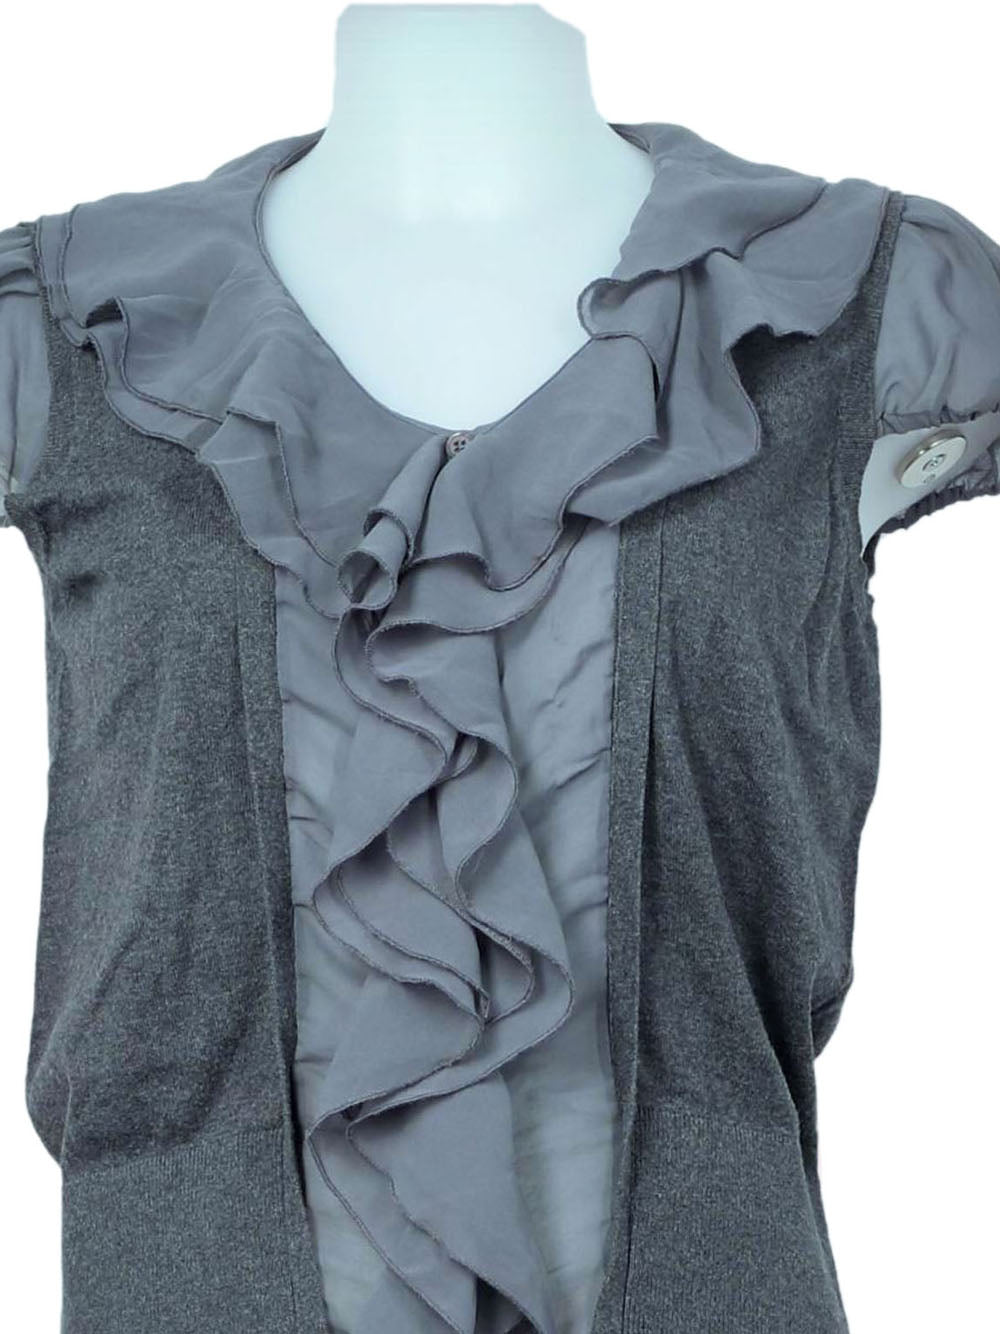 Detail photo of Preloved lwie Grey Woman's shirt - size 10/M